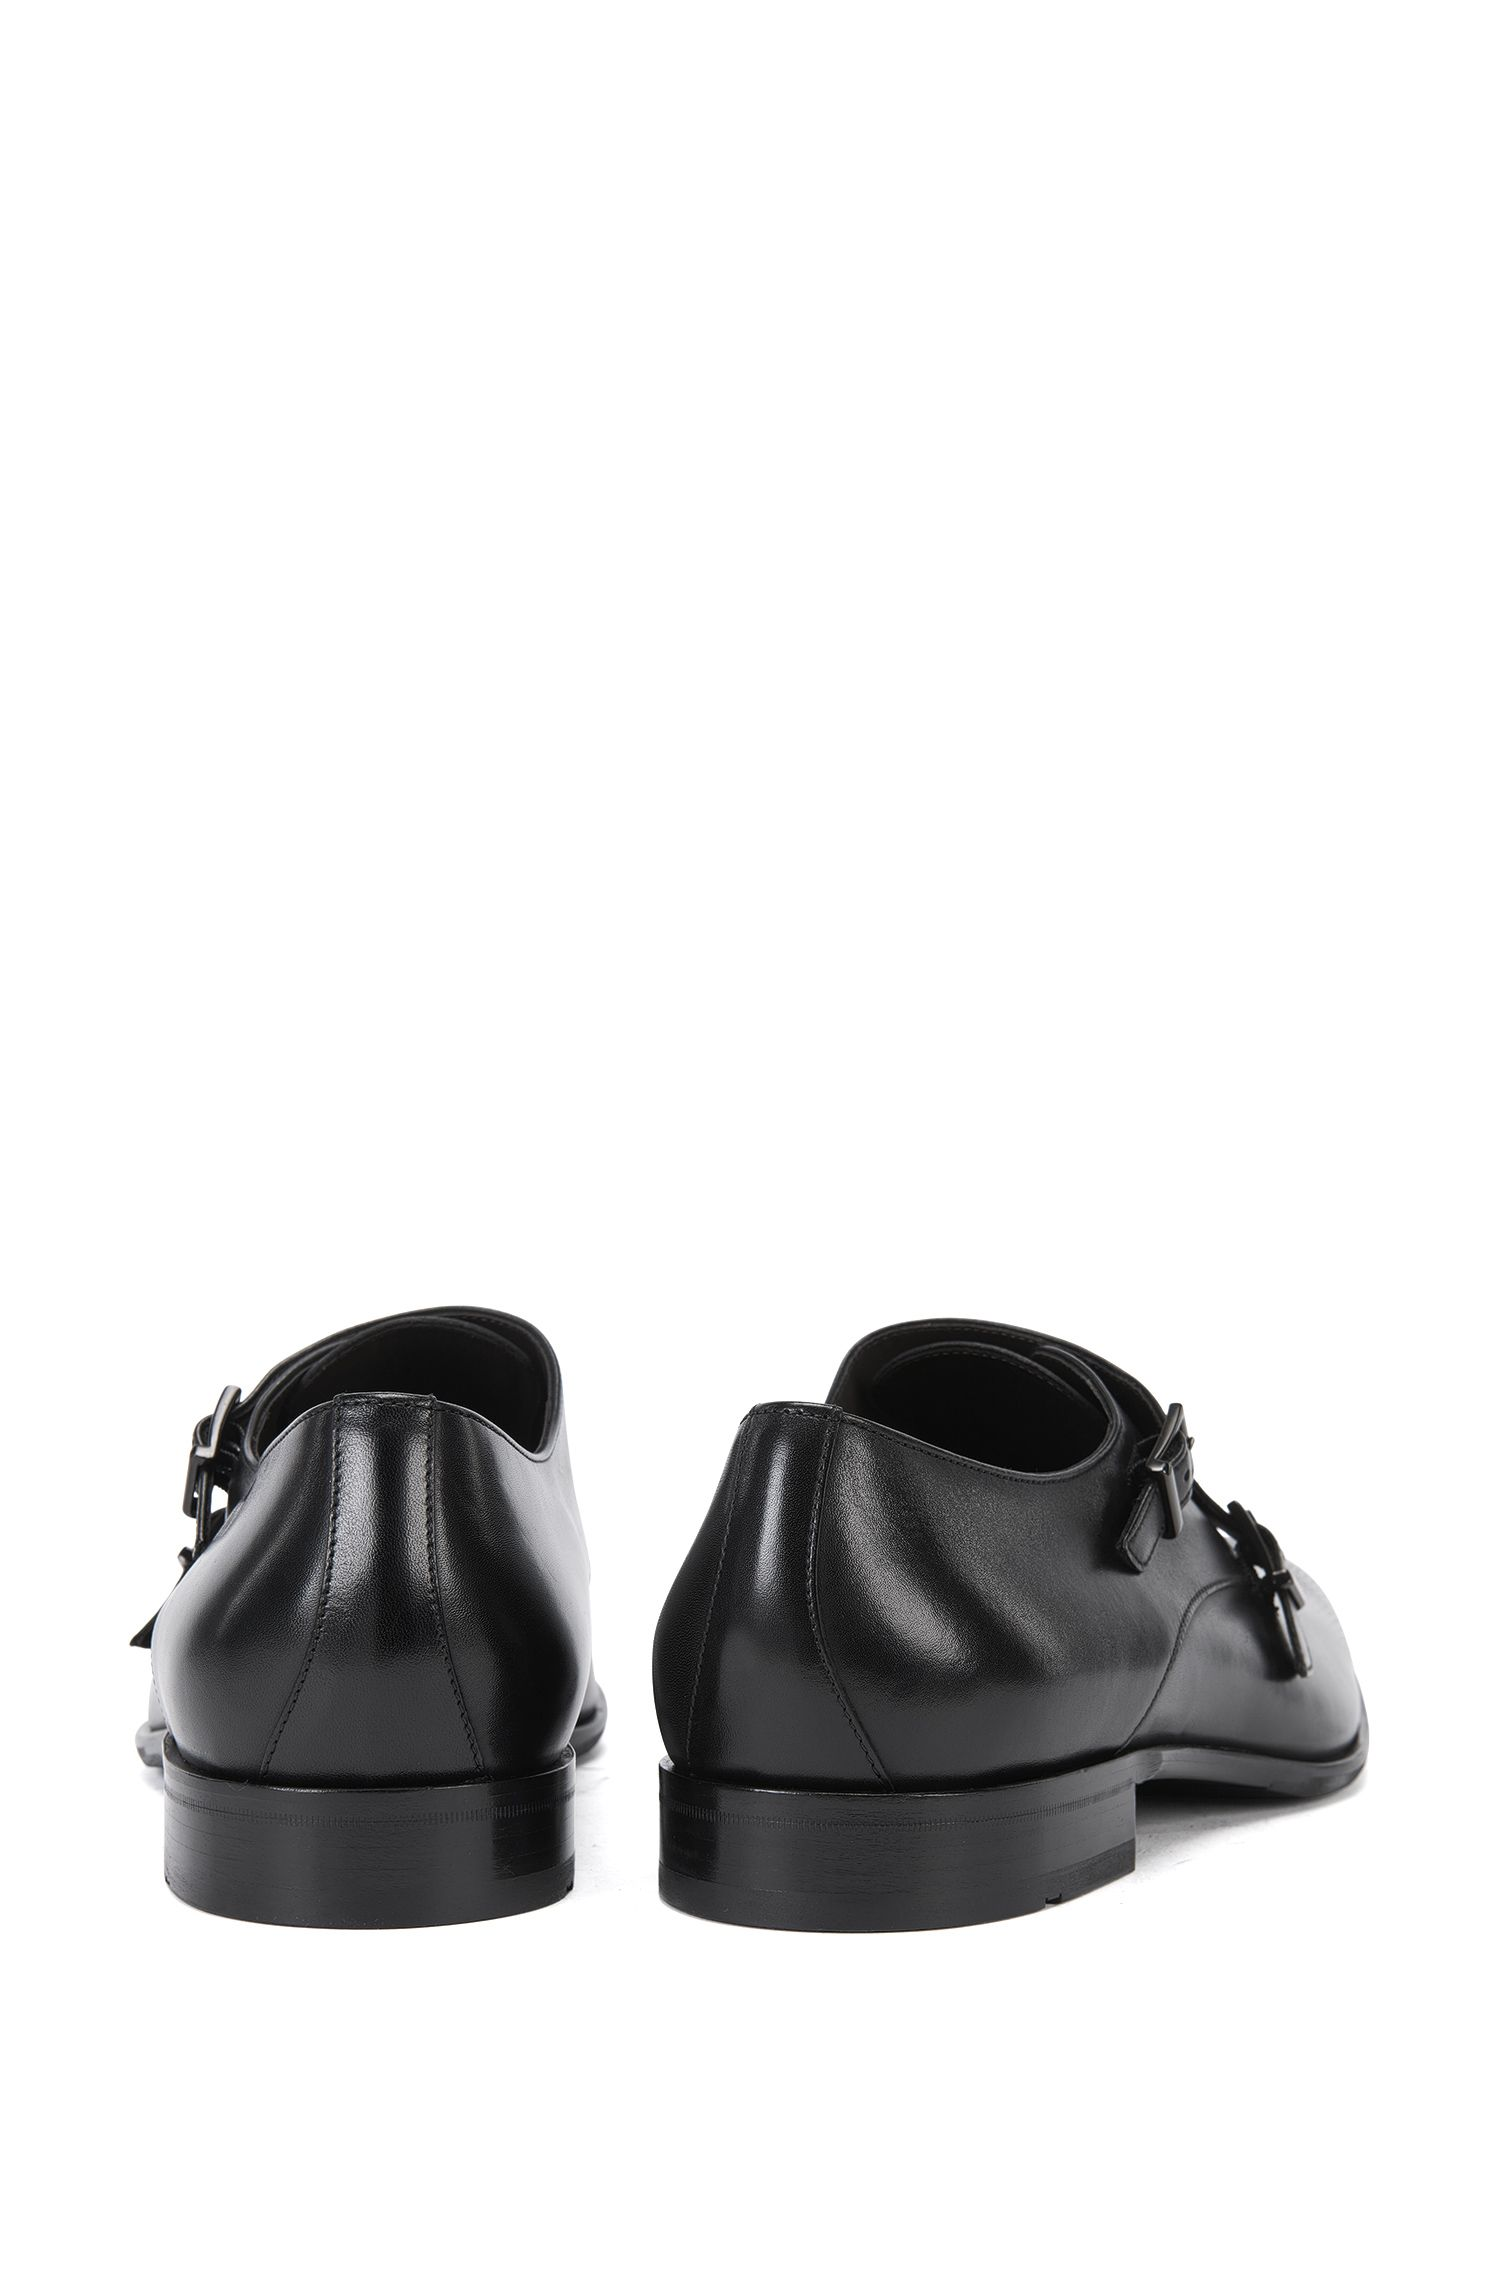 Leather Monk Strap Dress Shoe | Chelsea Monk Clts, Black